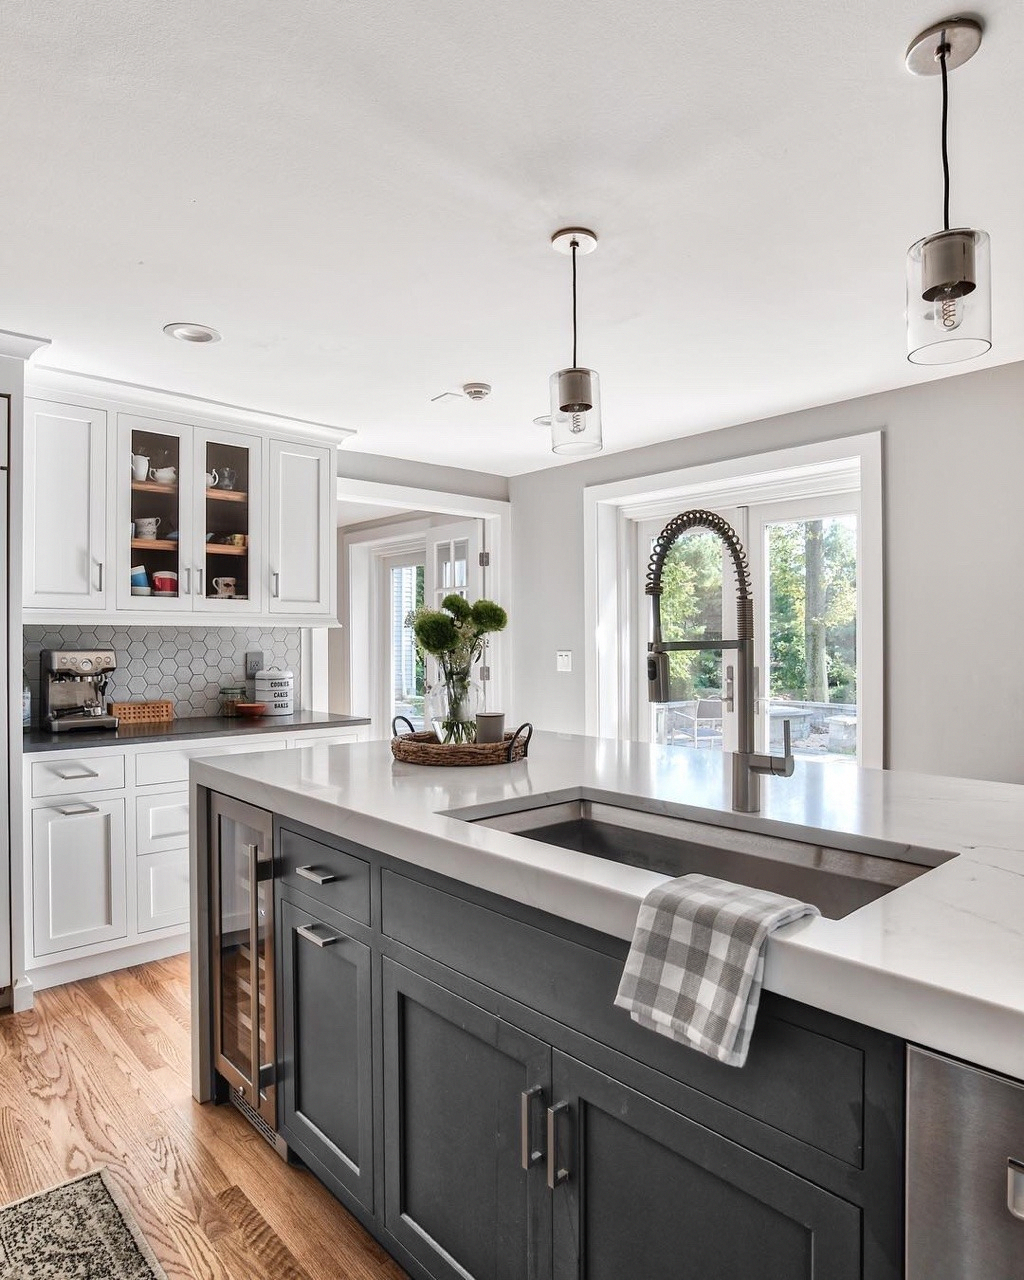 One Of The Numerous Concerns Inquired About Dishwashers And Remodeling Is How It Is Possibl In 2020 Grey Kitchen